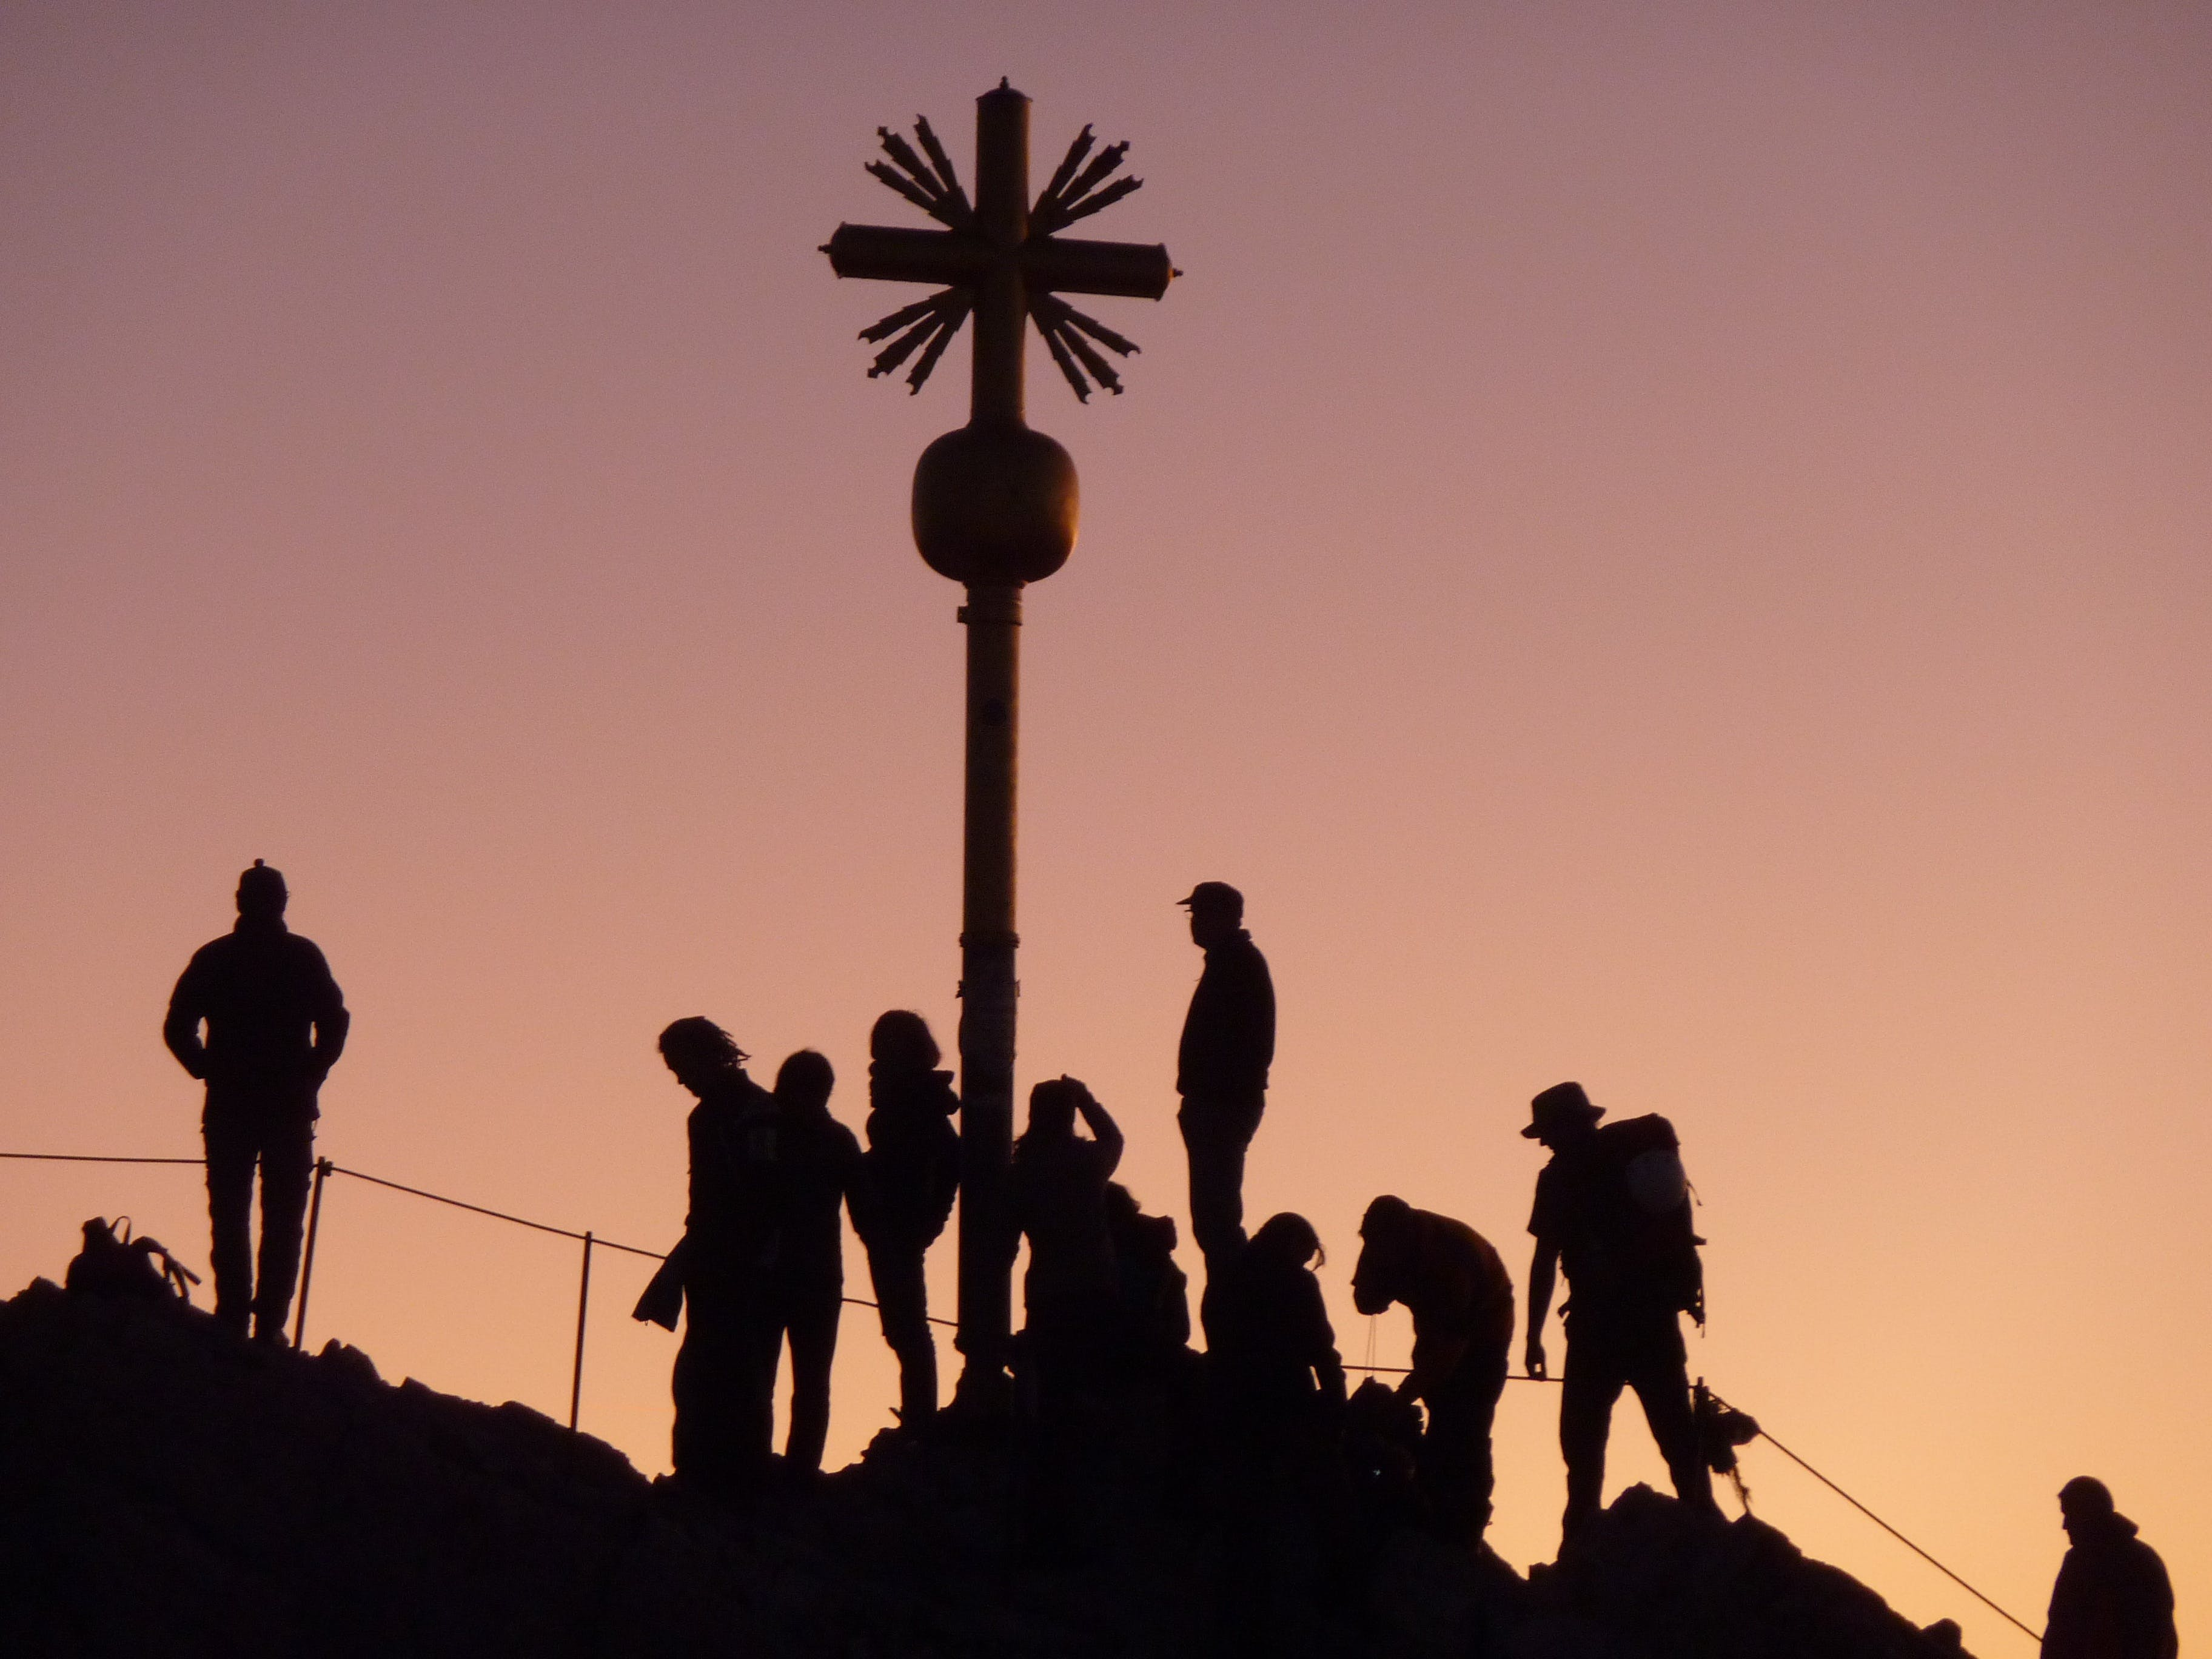 Silhouette of Group of People